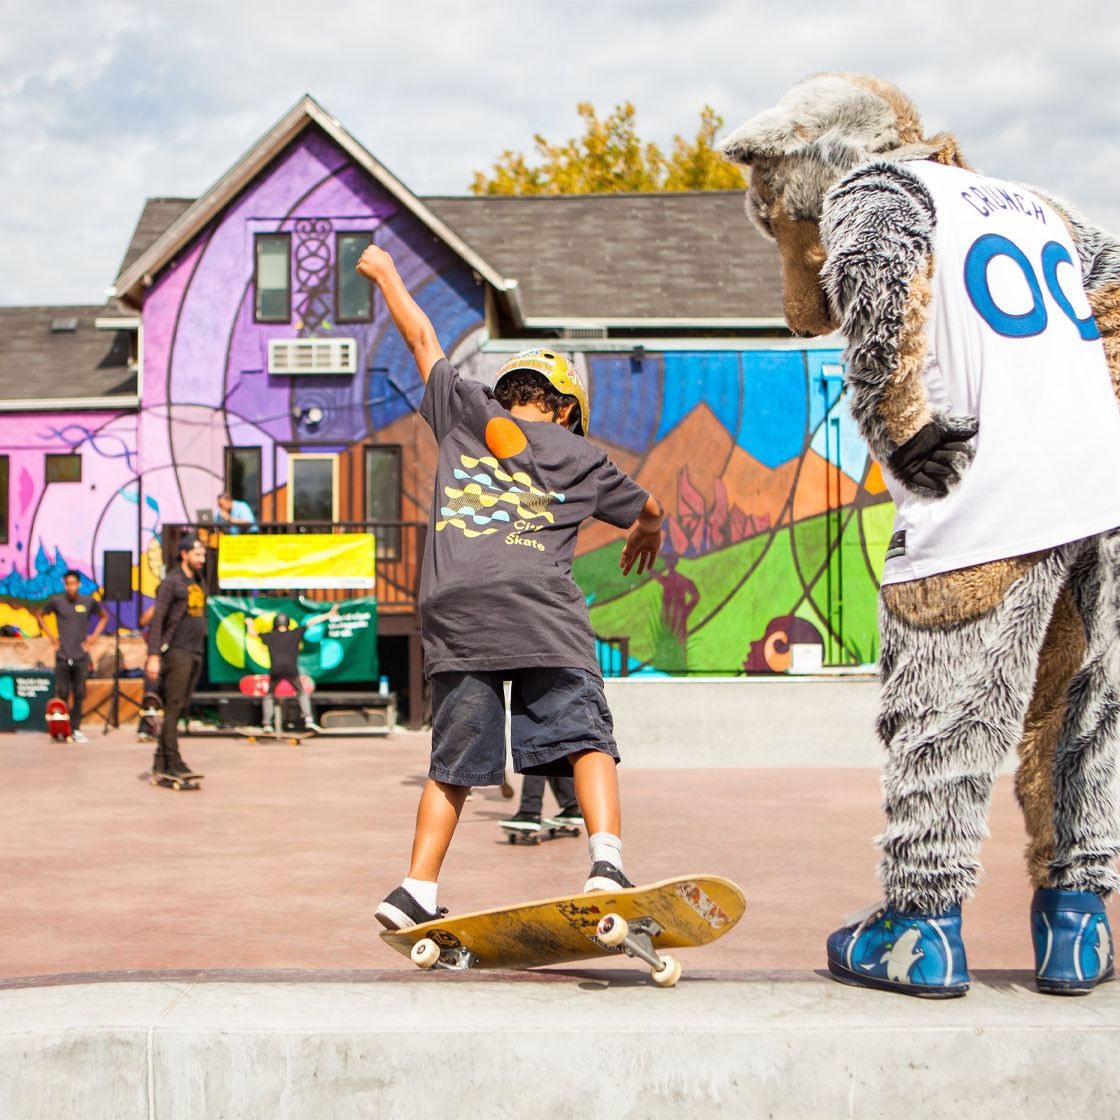 A young person skateboarding with a sports mascot